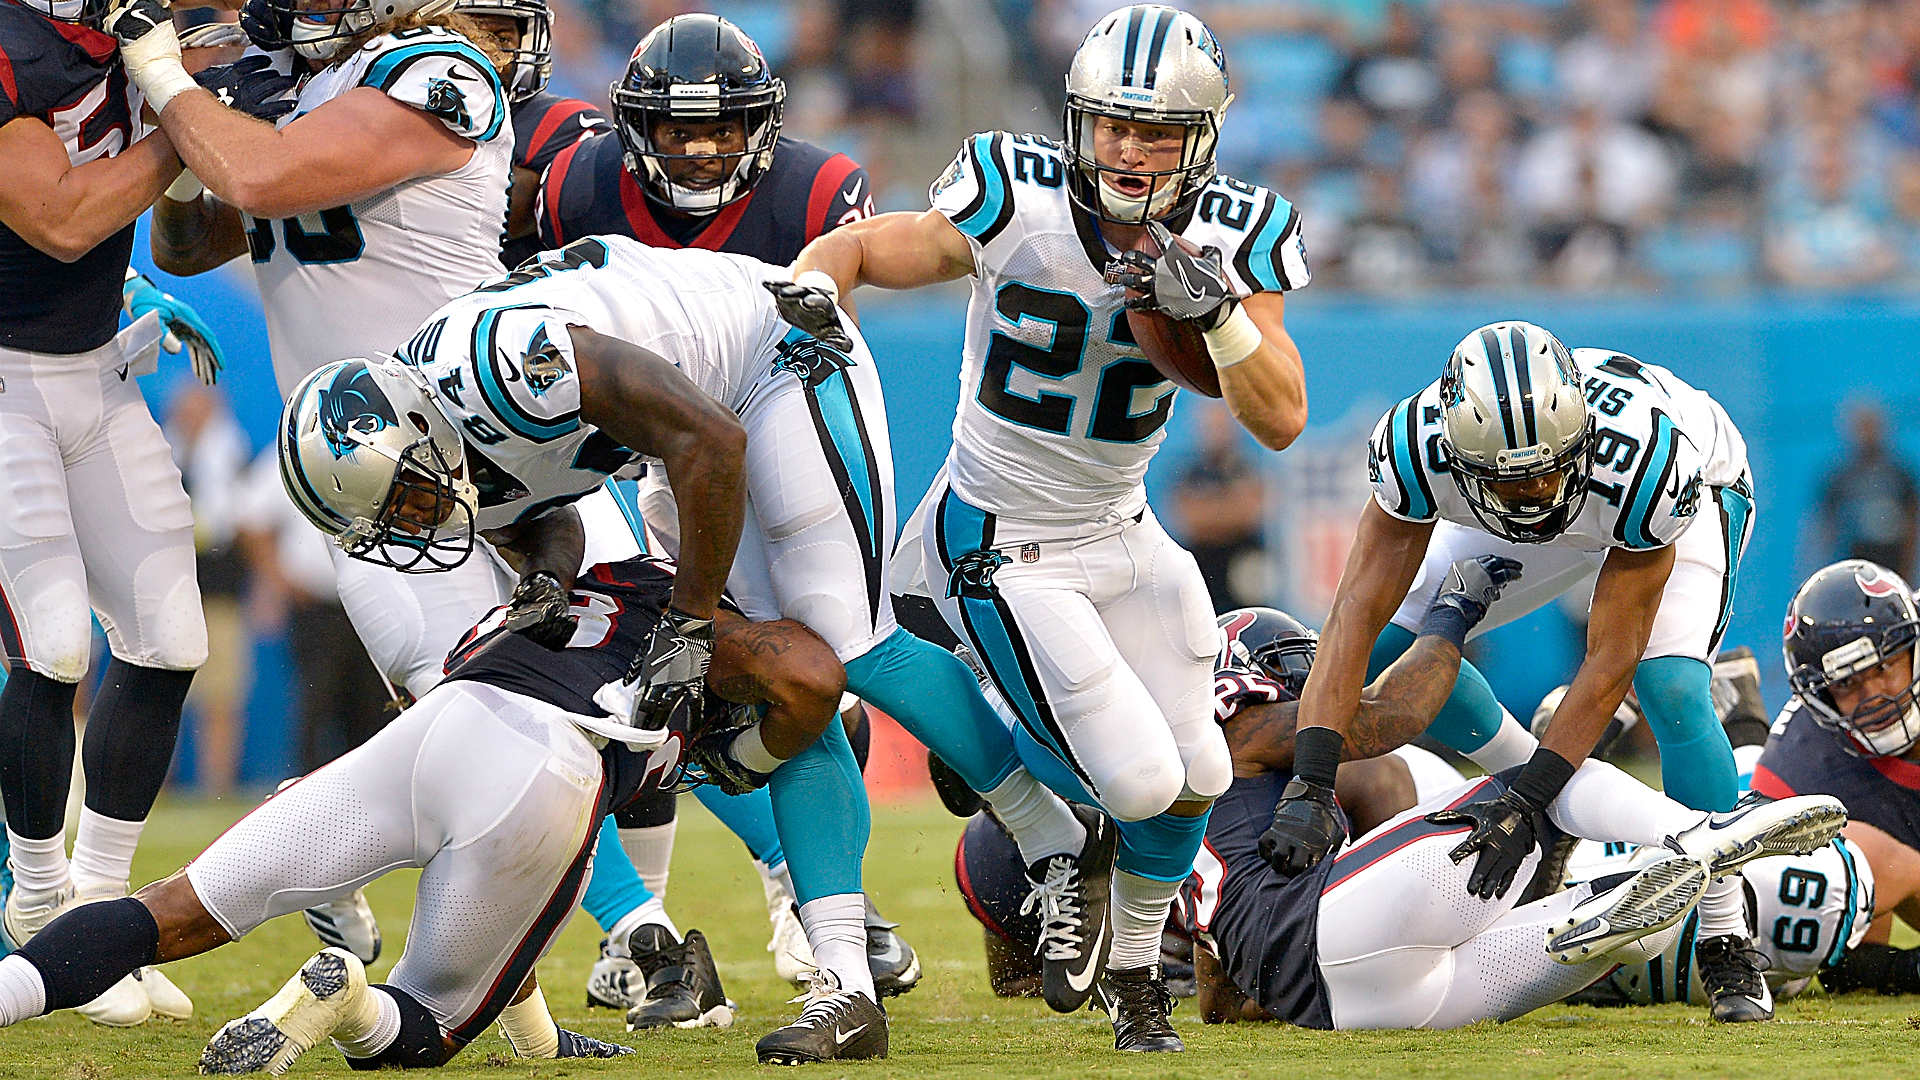 NFL Preseason Week 1: Texans at Panthers - Four Things To Watch For